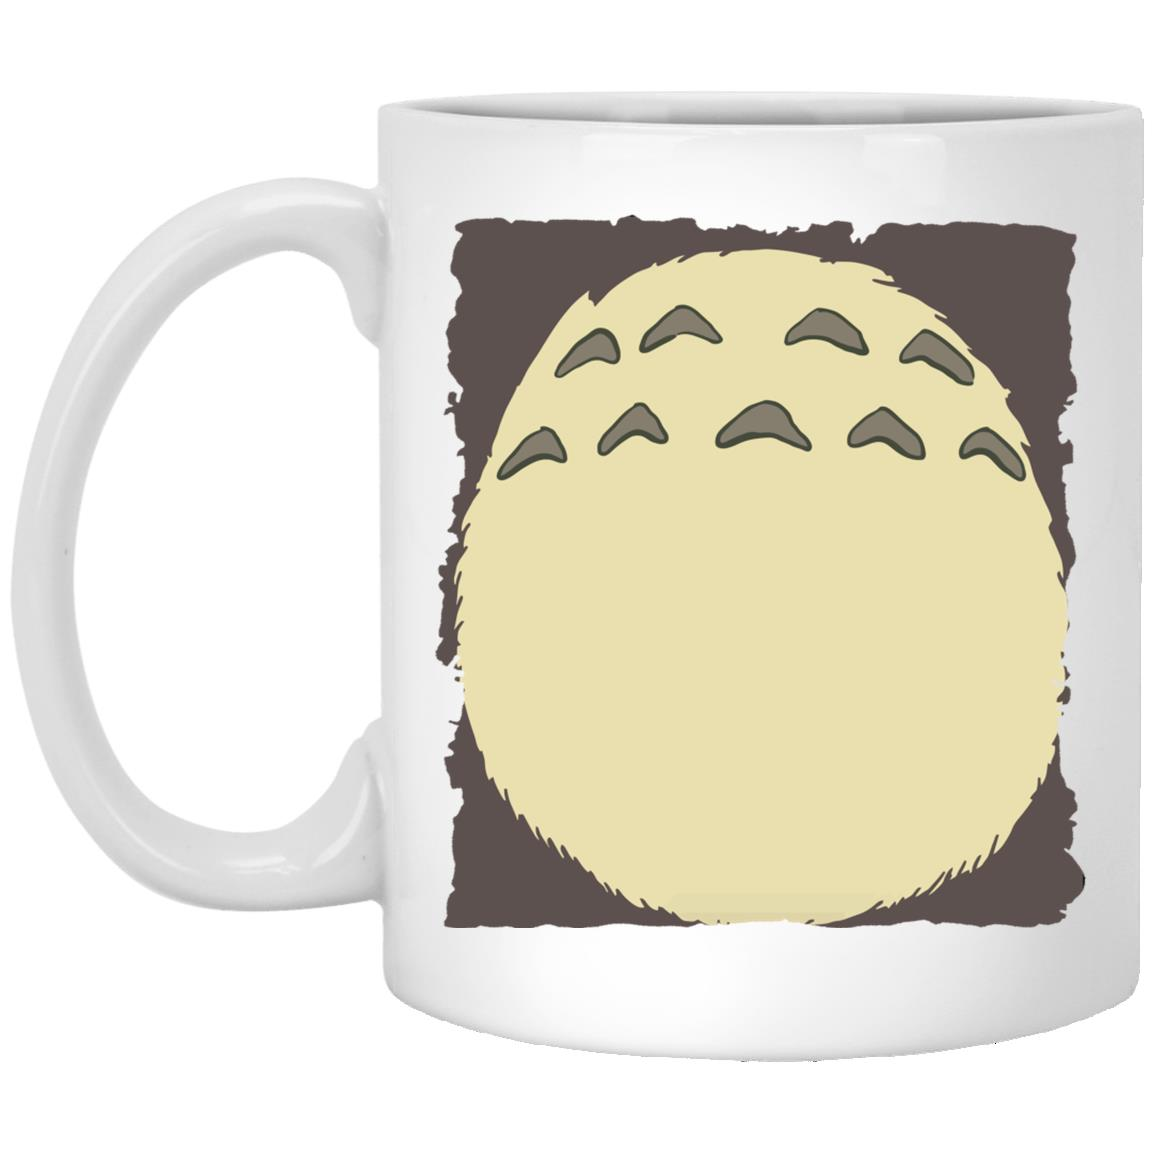 My Neighbor Totoro – Totoro Belly Mug